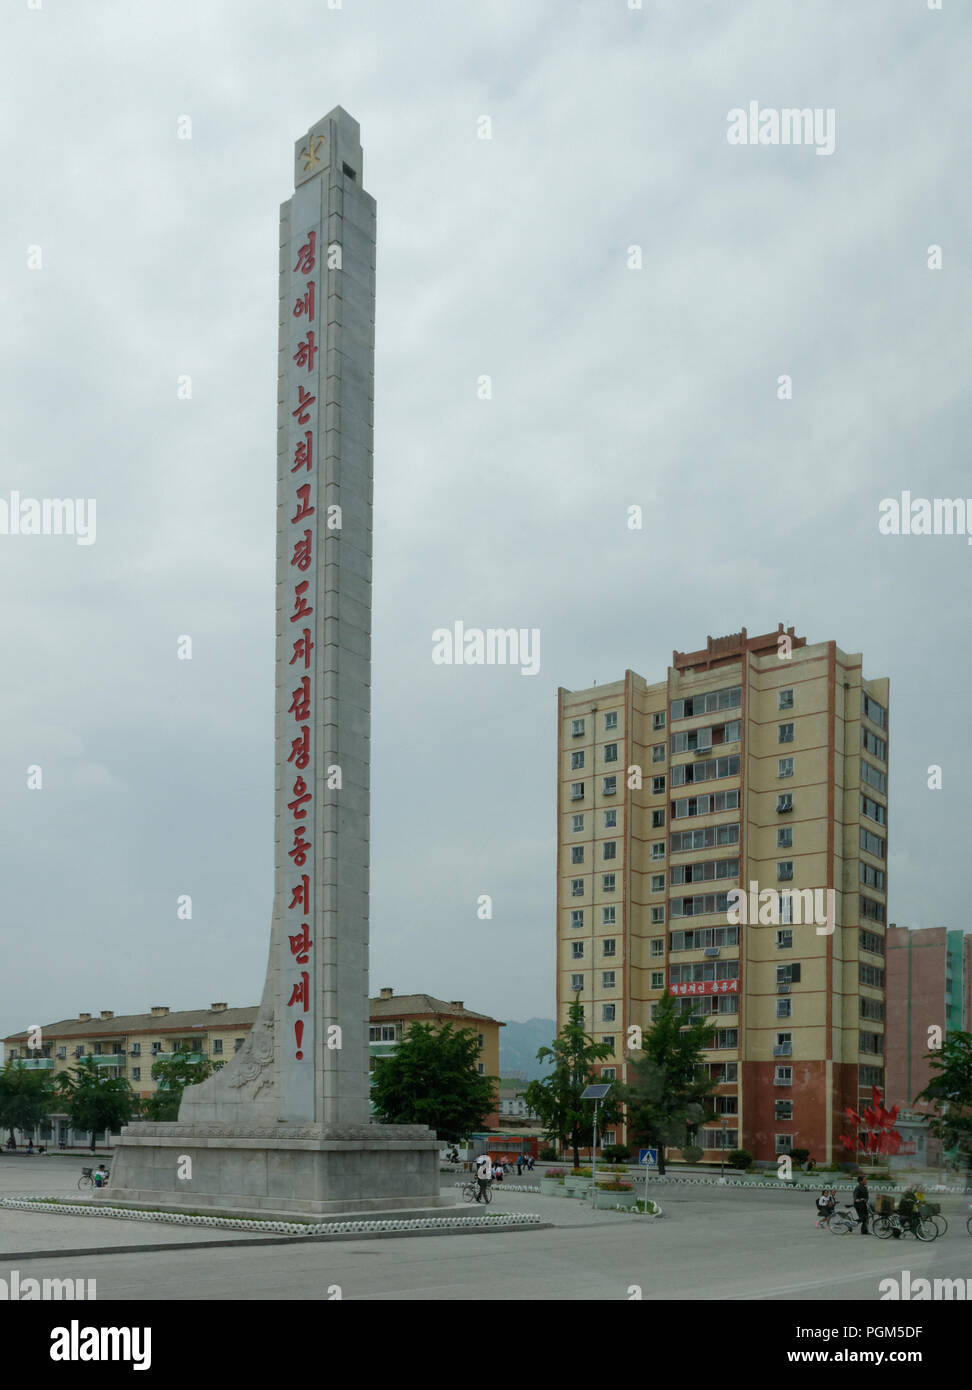 Monument in Kaesong inspired by the Juche Tower, North Korea - Stock Image